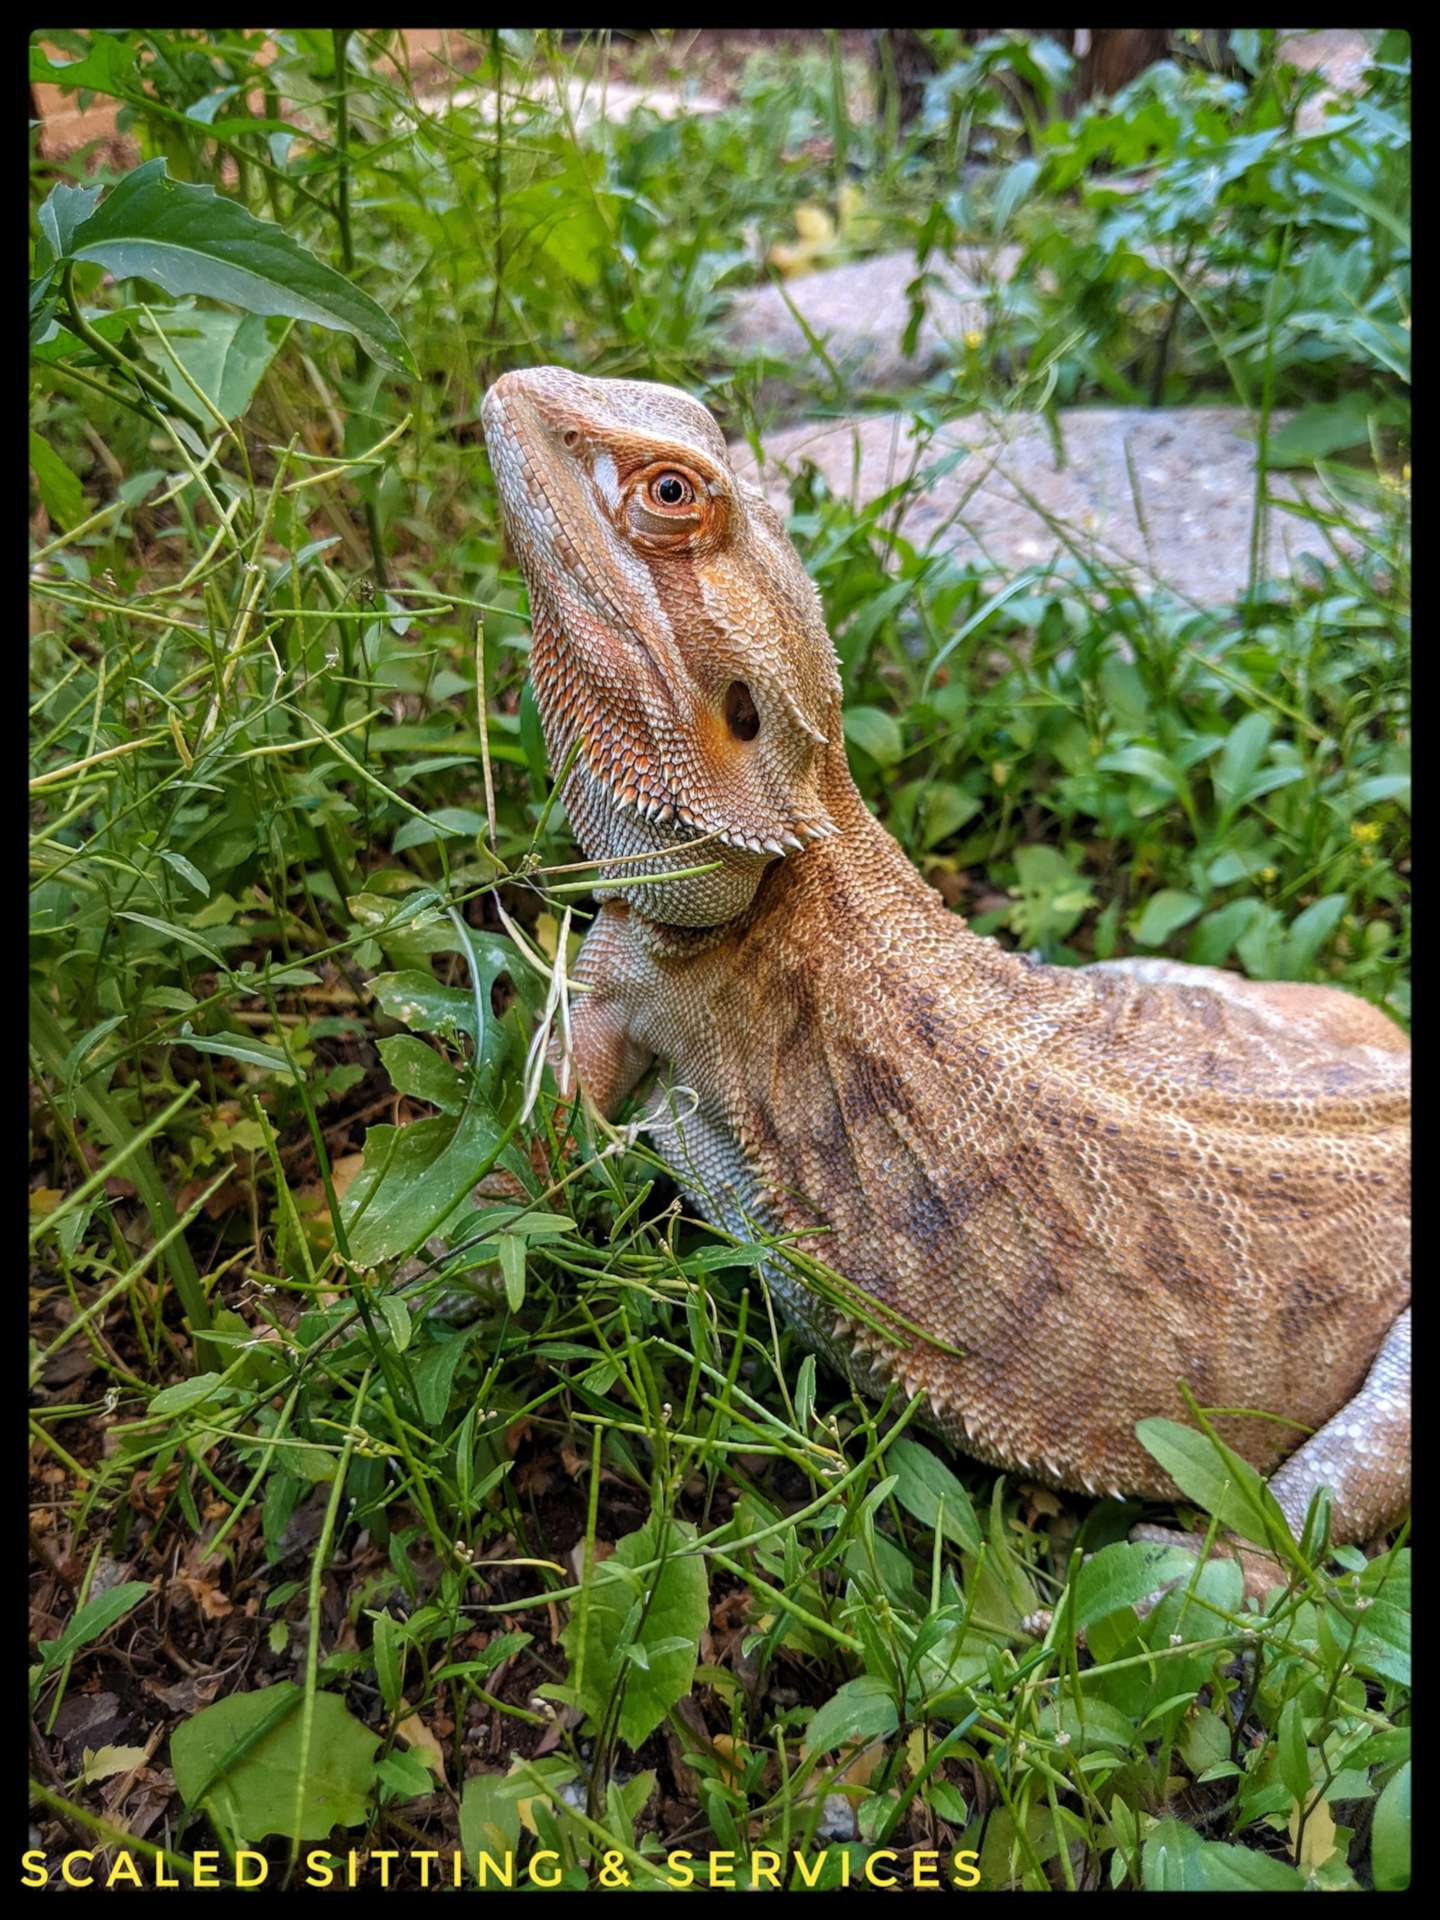 Bearded dragon outside in green foliage looking up towards the sky